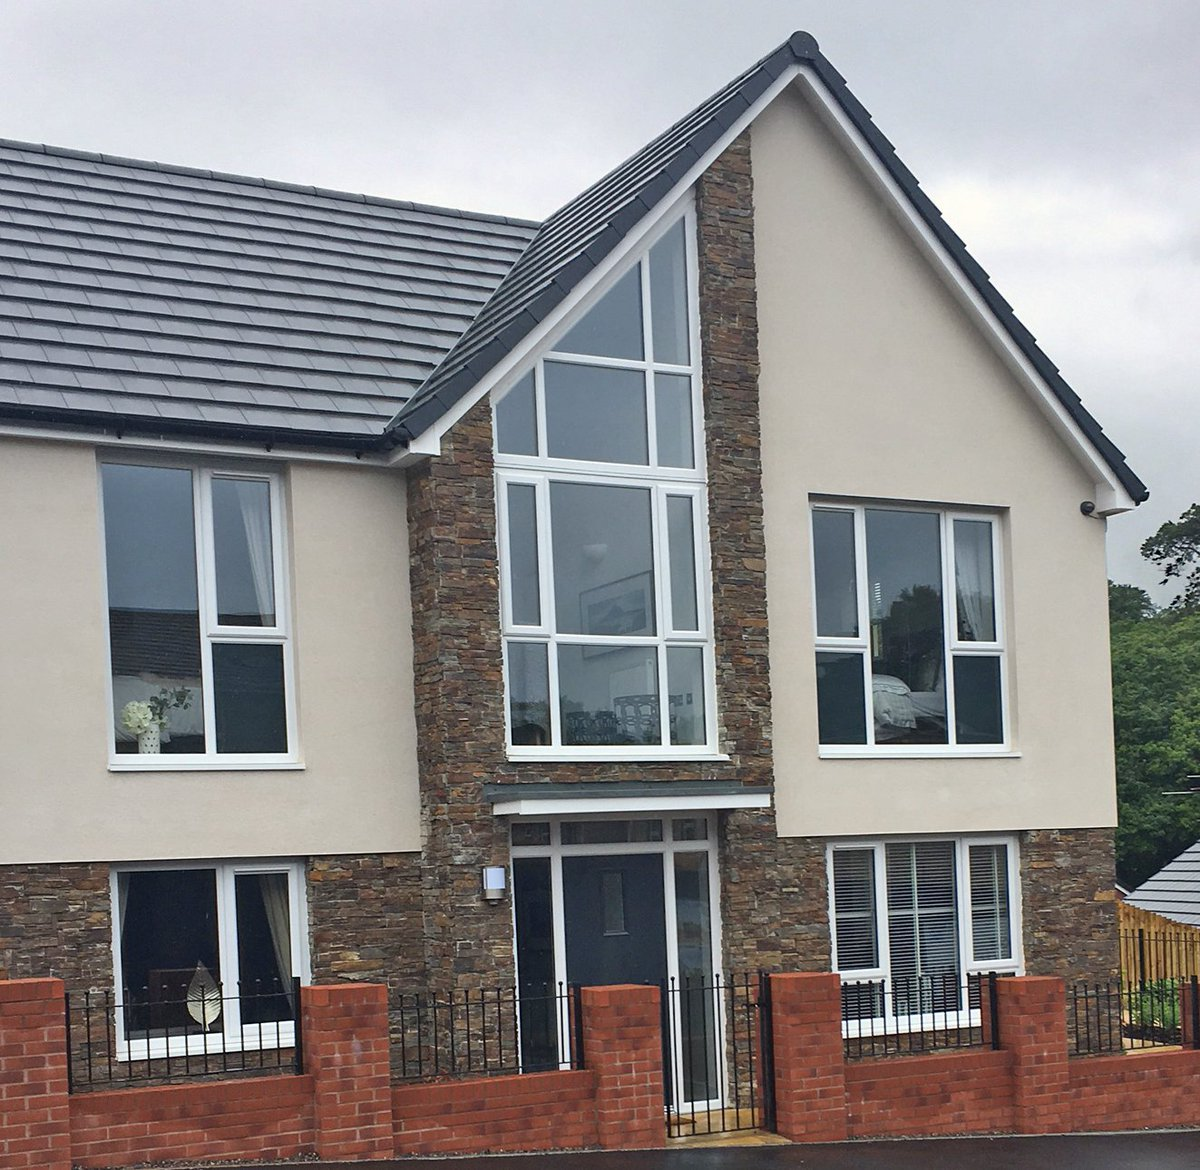 Rus Roof Tiles On Twitter 43 New Homes In Swansea Beneed From Rusrooftiles Grampian As Part Of A Wider Redevelopment Programme Wales